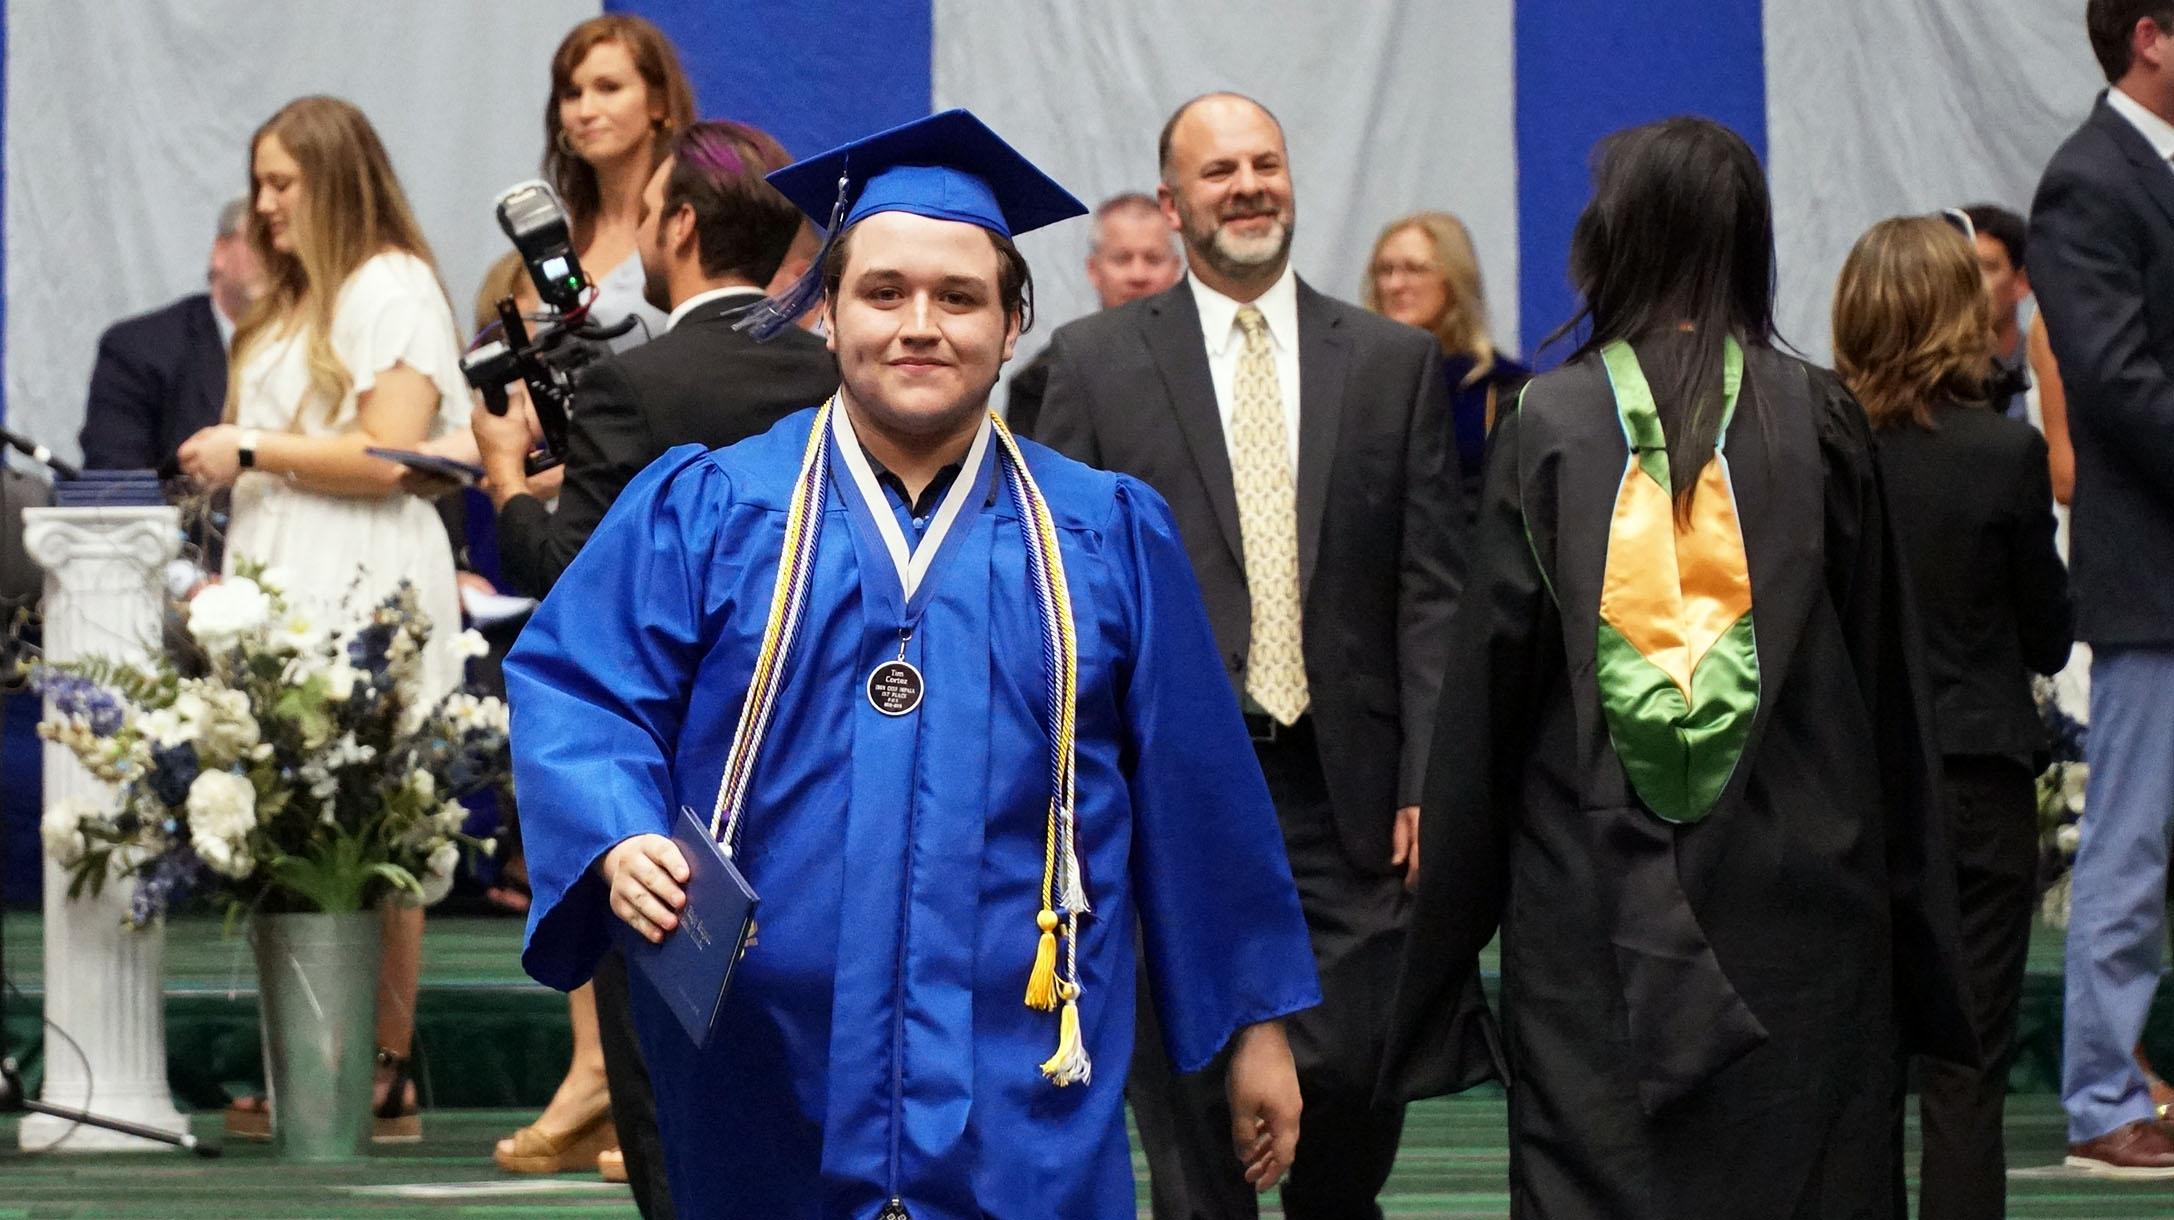 A Pouidre High School grad walks away with his diploma.